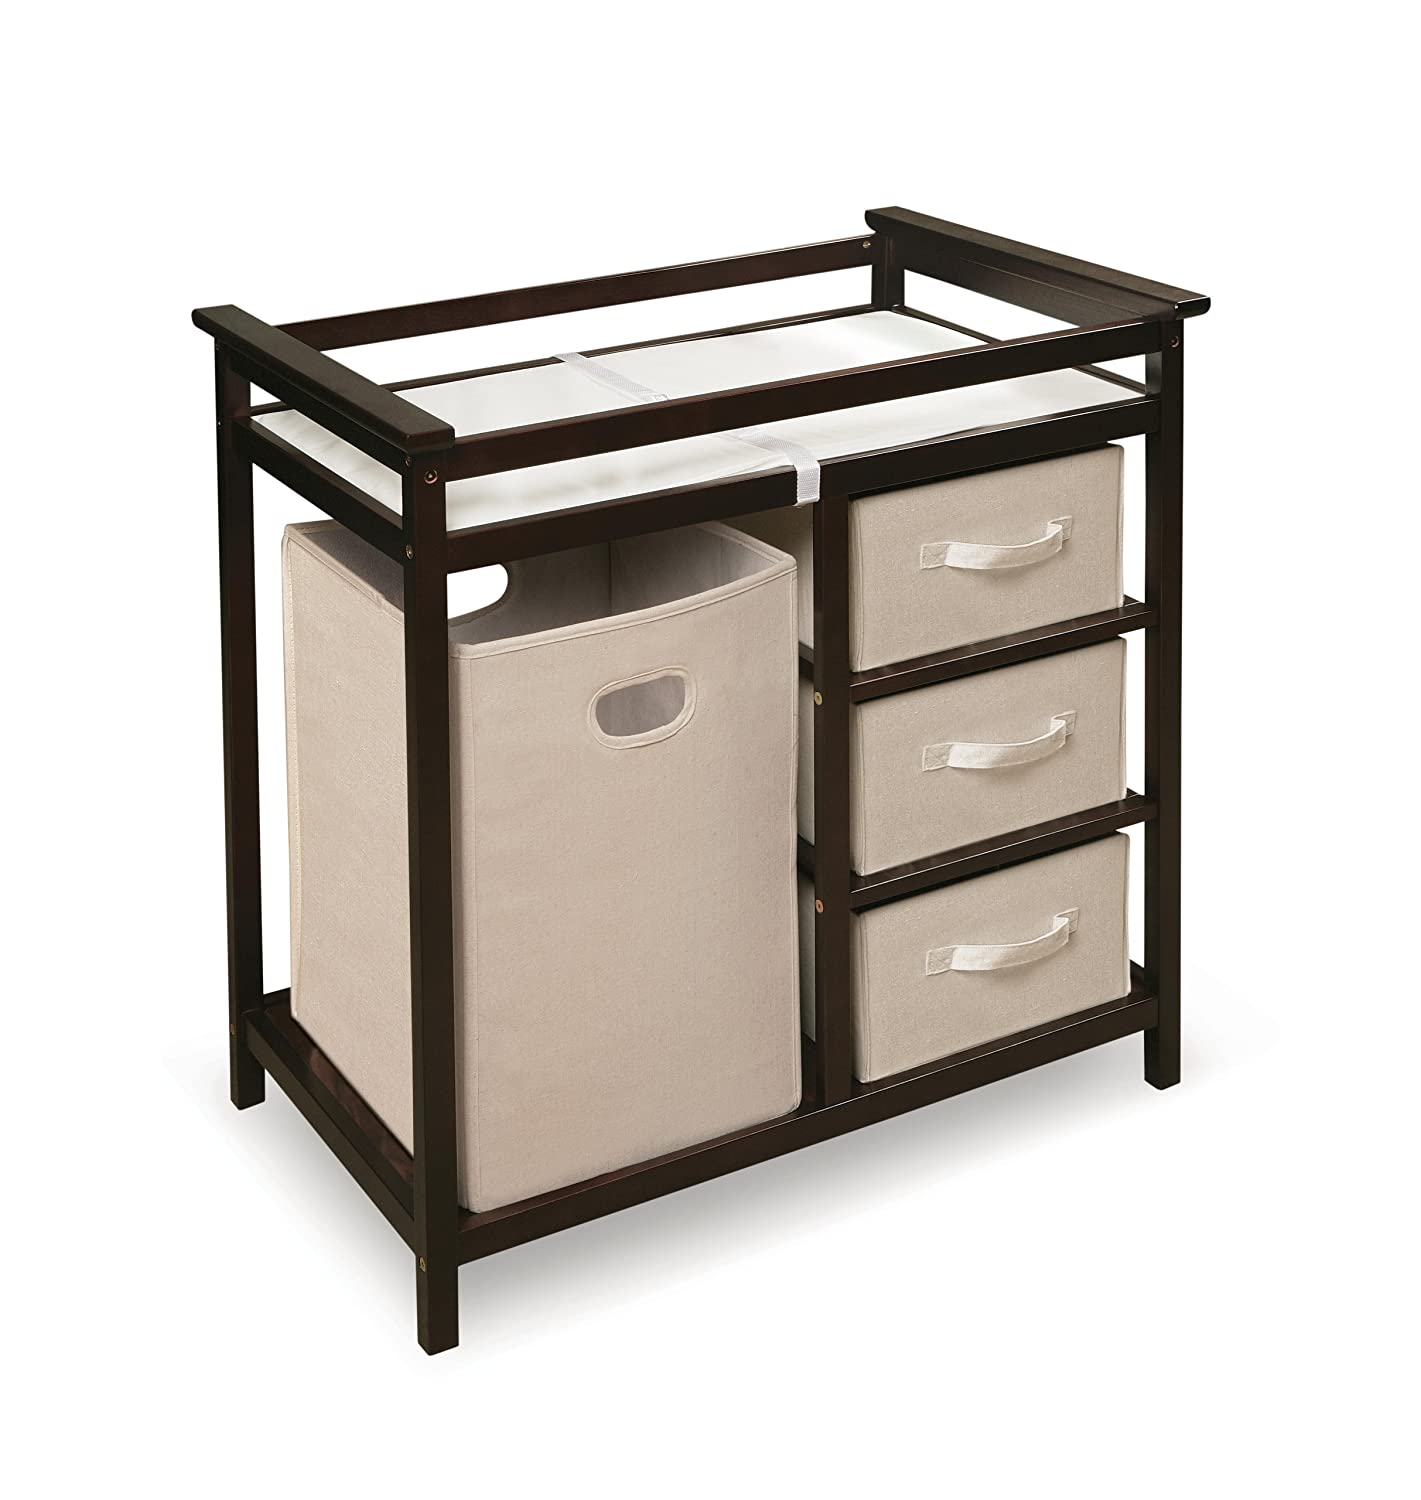 badger basket modern changing table with  baskets and hamper  - badger basket modern changing table with  baskets and hamper espressoamazonca baby